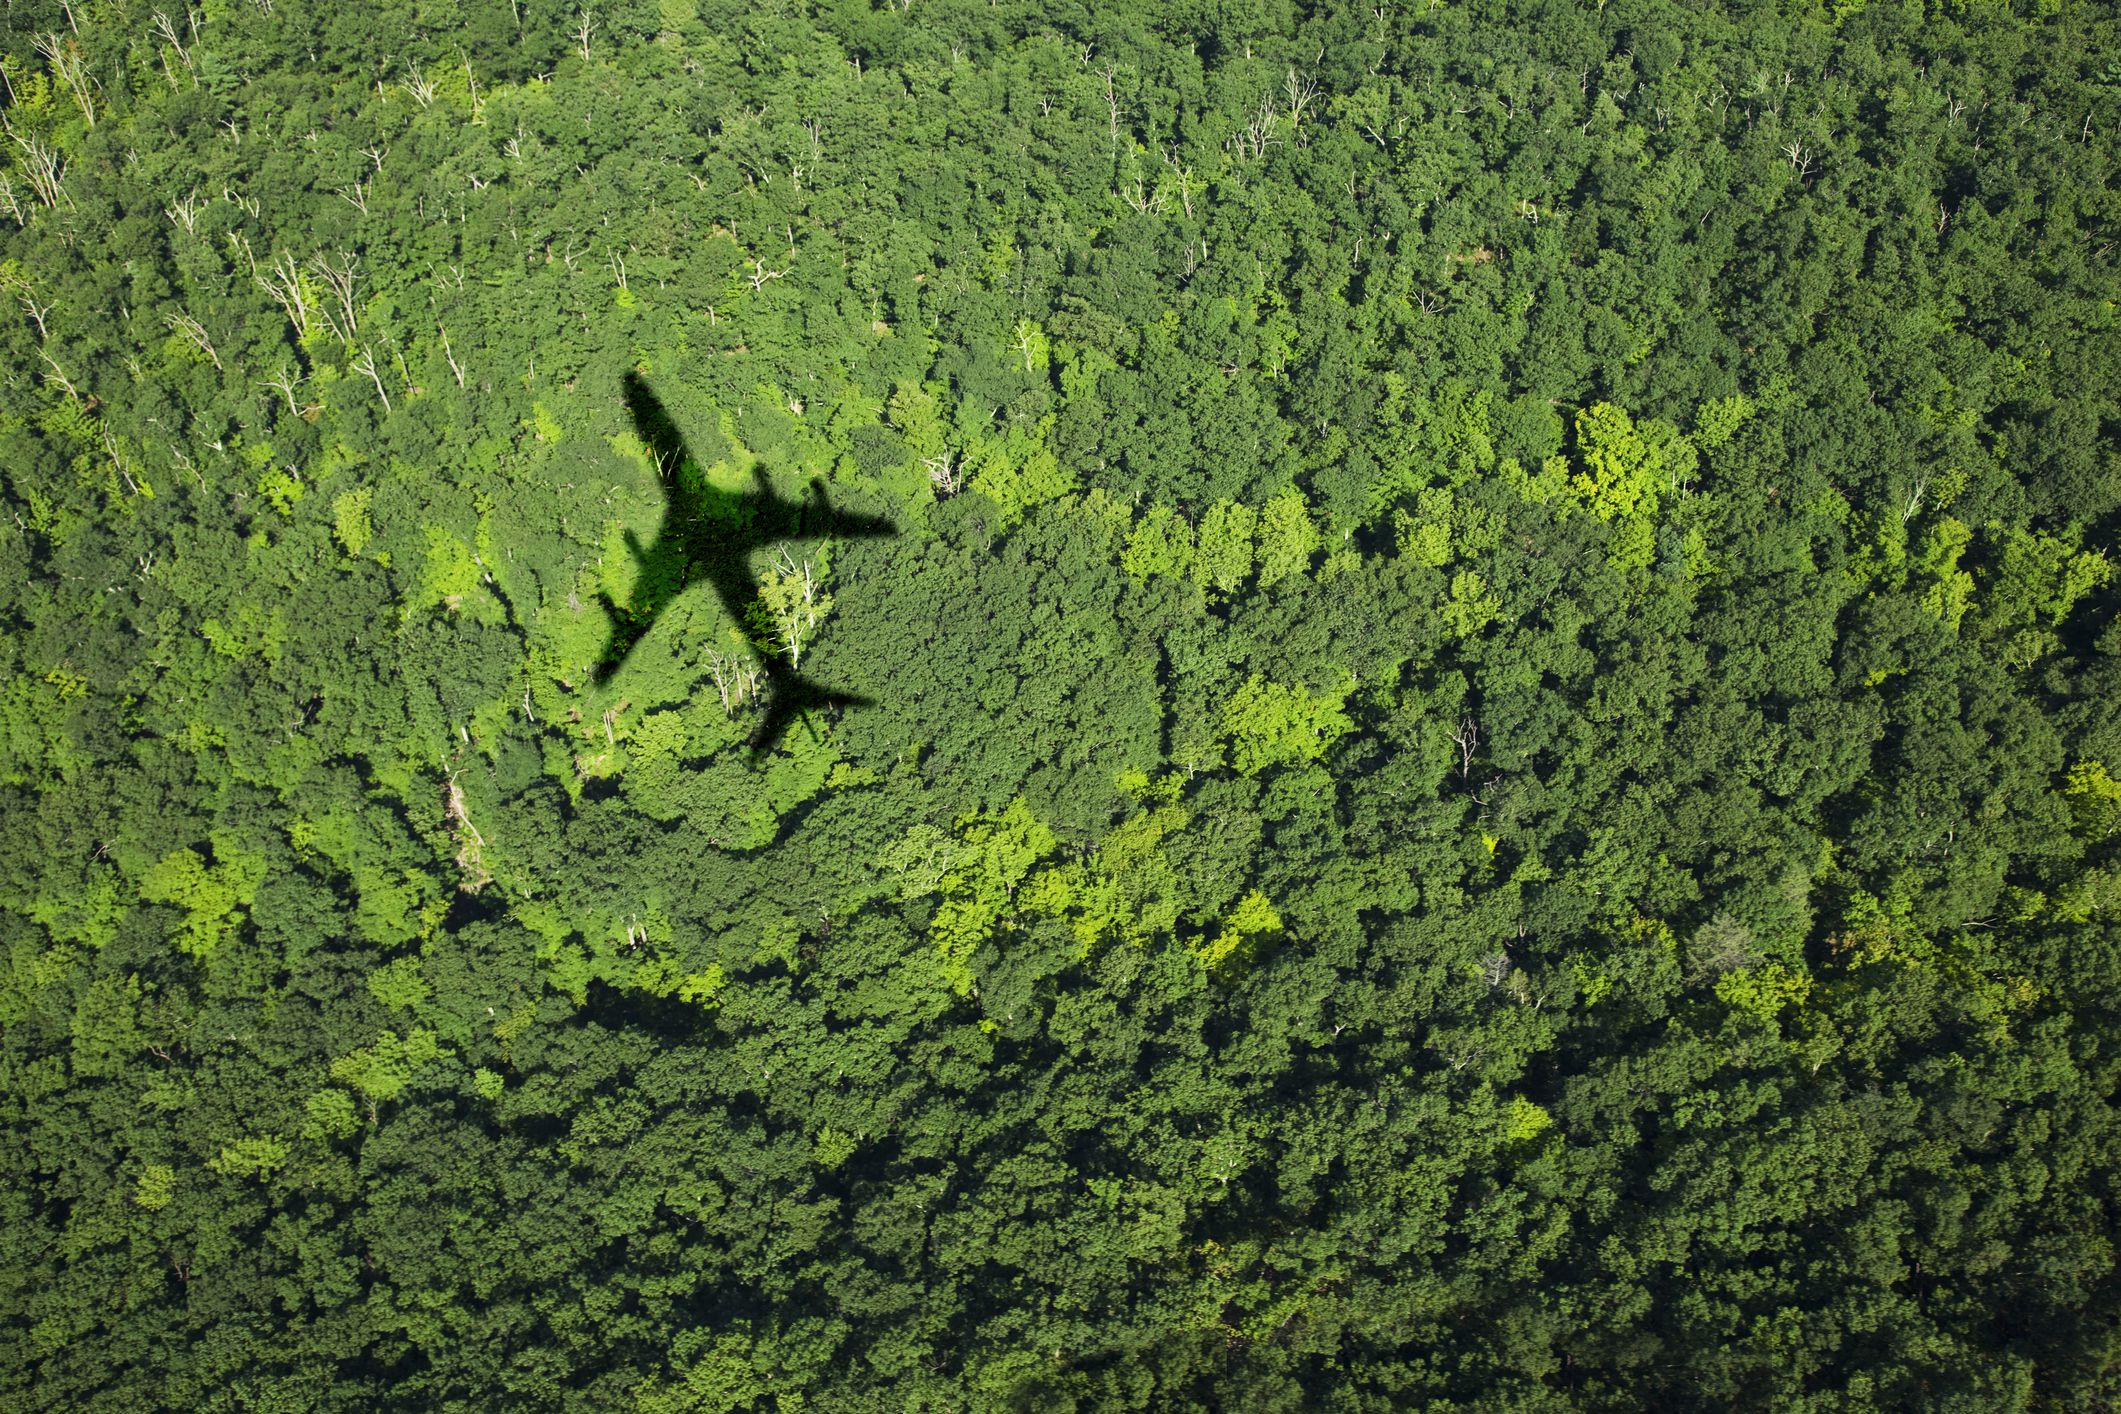 Shadow of airplane over forest